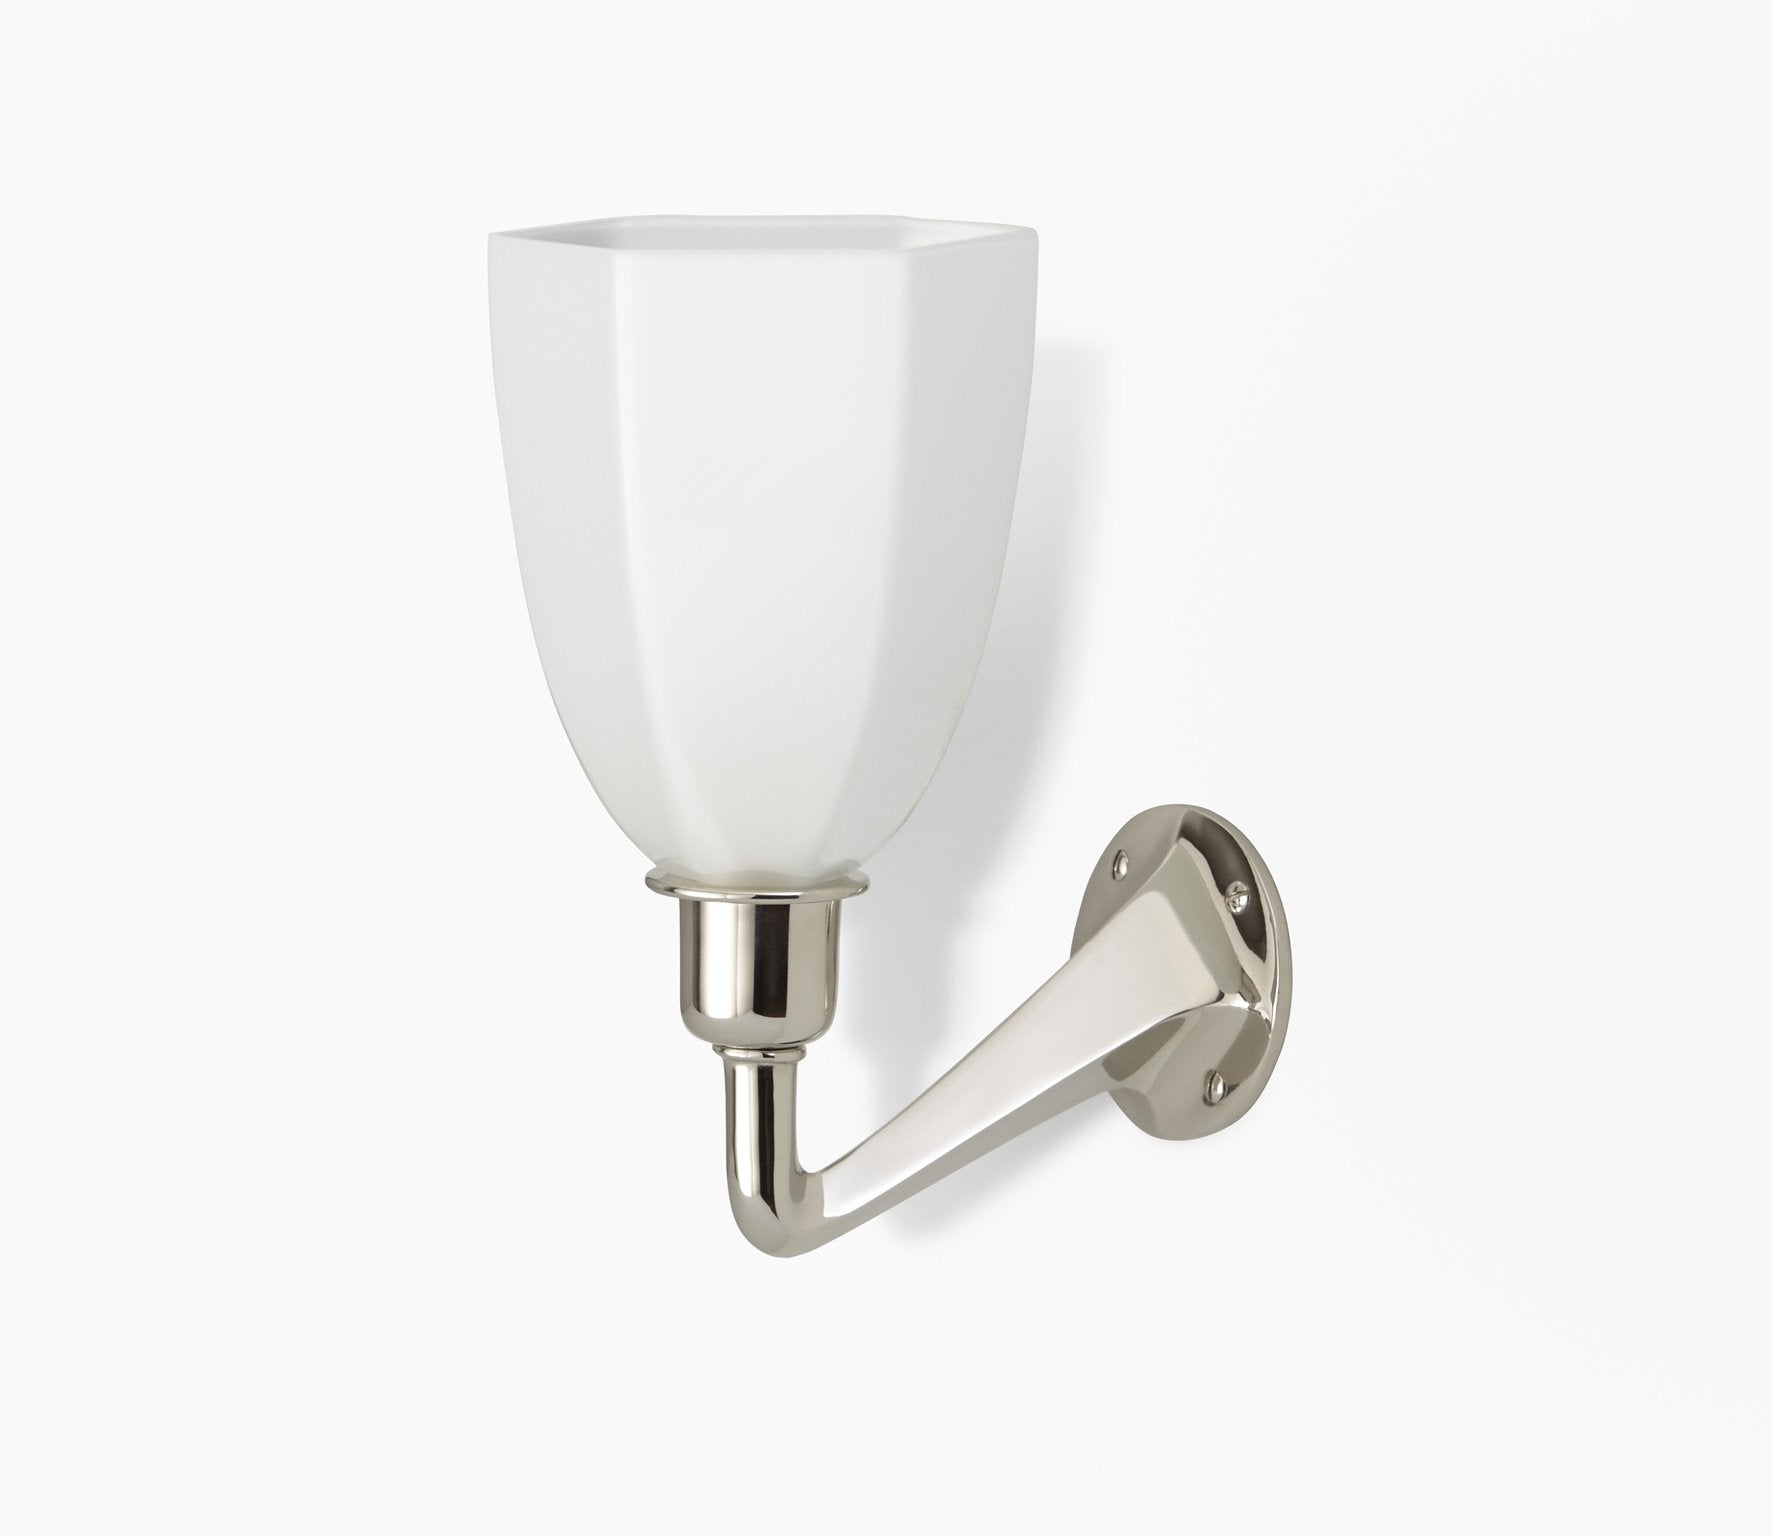 Leila Wall Light with Glass Shade Product Image 1